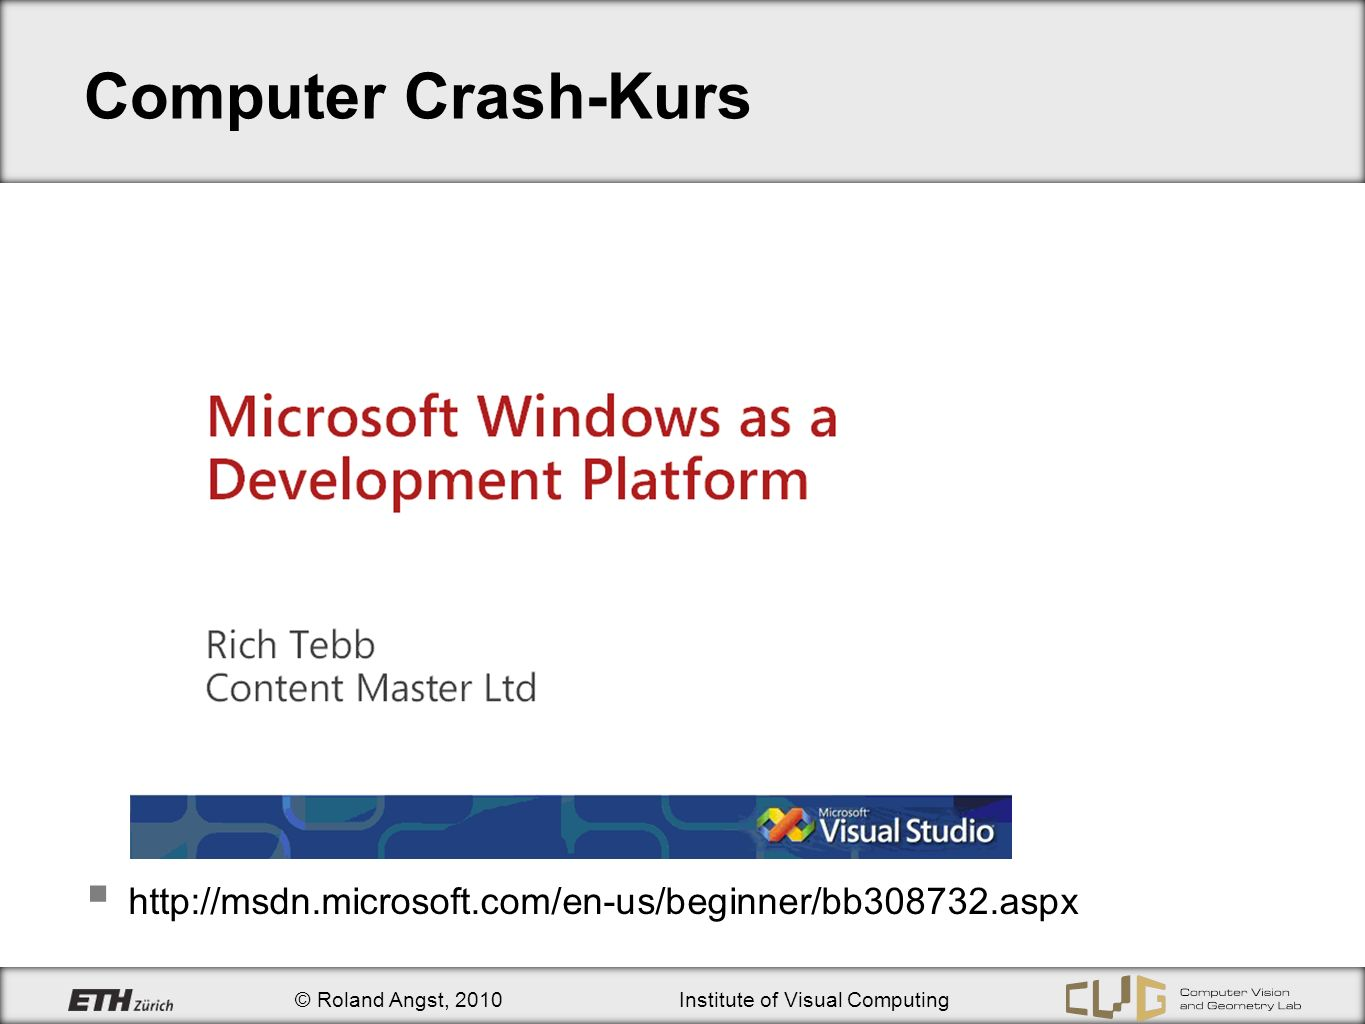 © Roland Angst, 2010Institute of Visual Computing Computer Crash-Kurs http://msdn.microsoft.com/en-us/beginner/bb308732.aspx